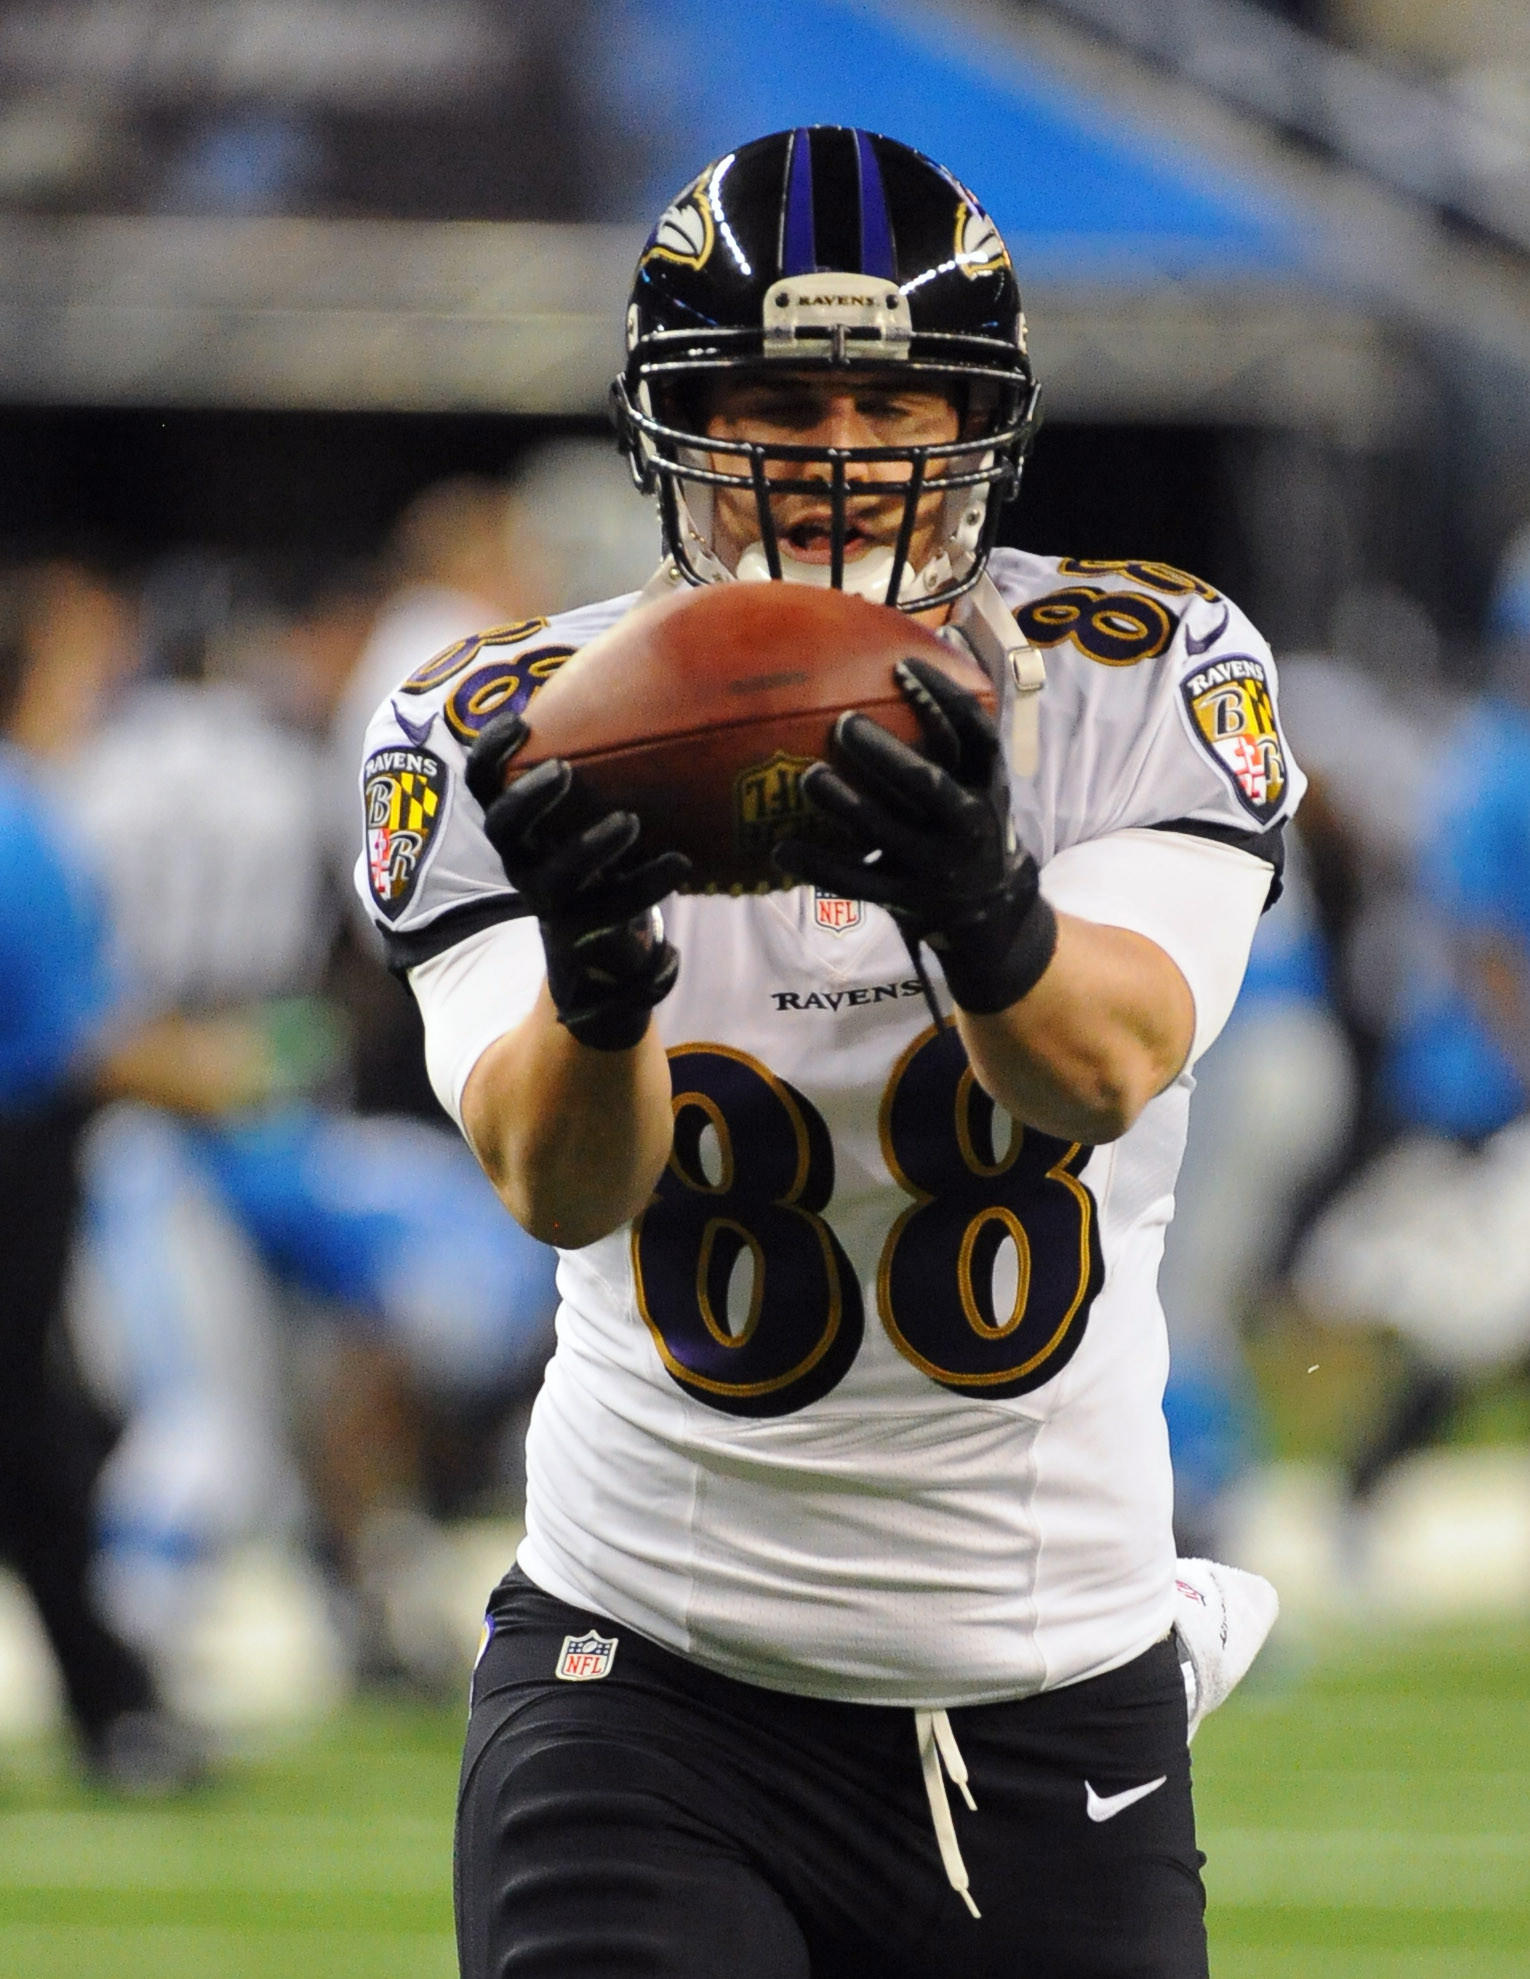 Ravens tight end Dennis Pitta before a game against the Detroit Lions in December.